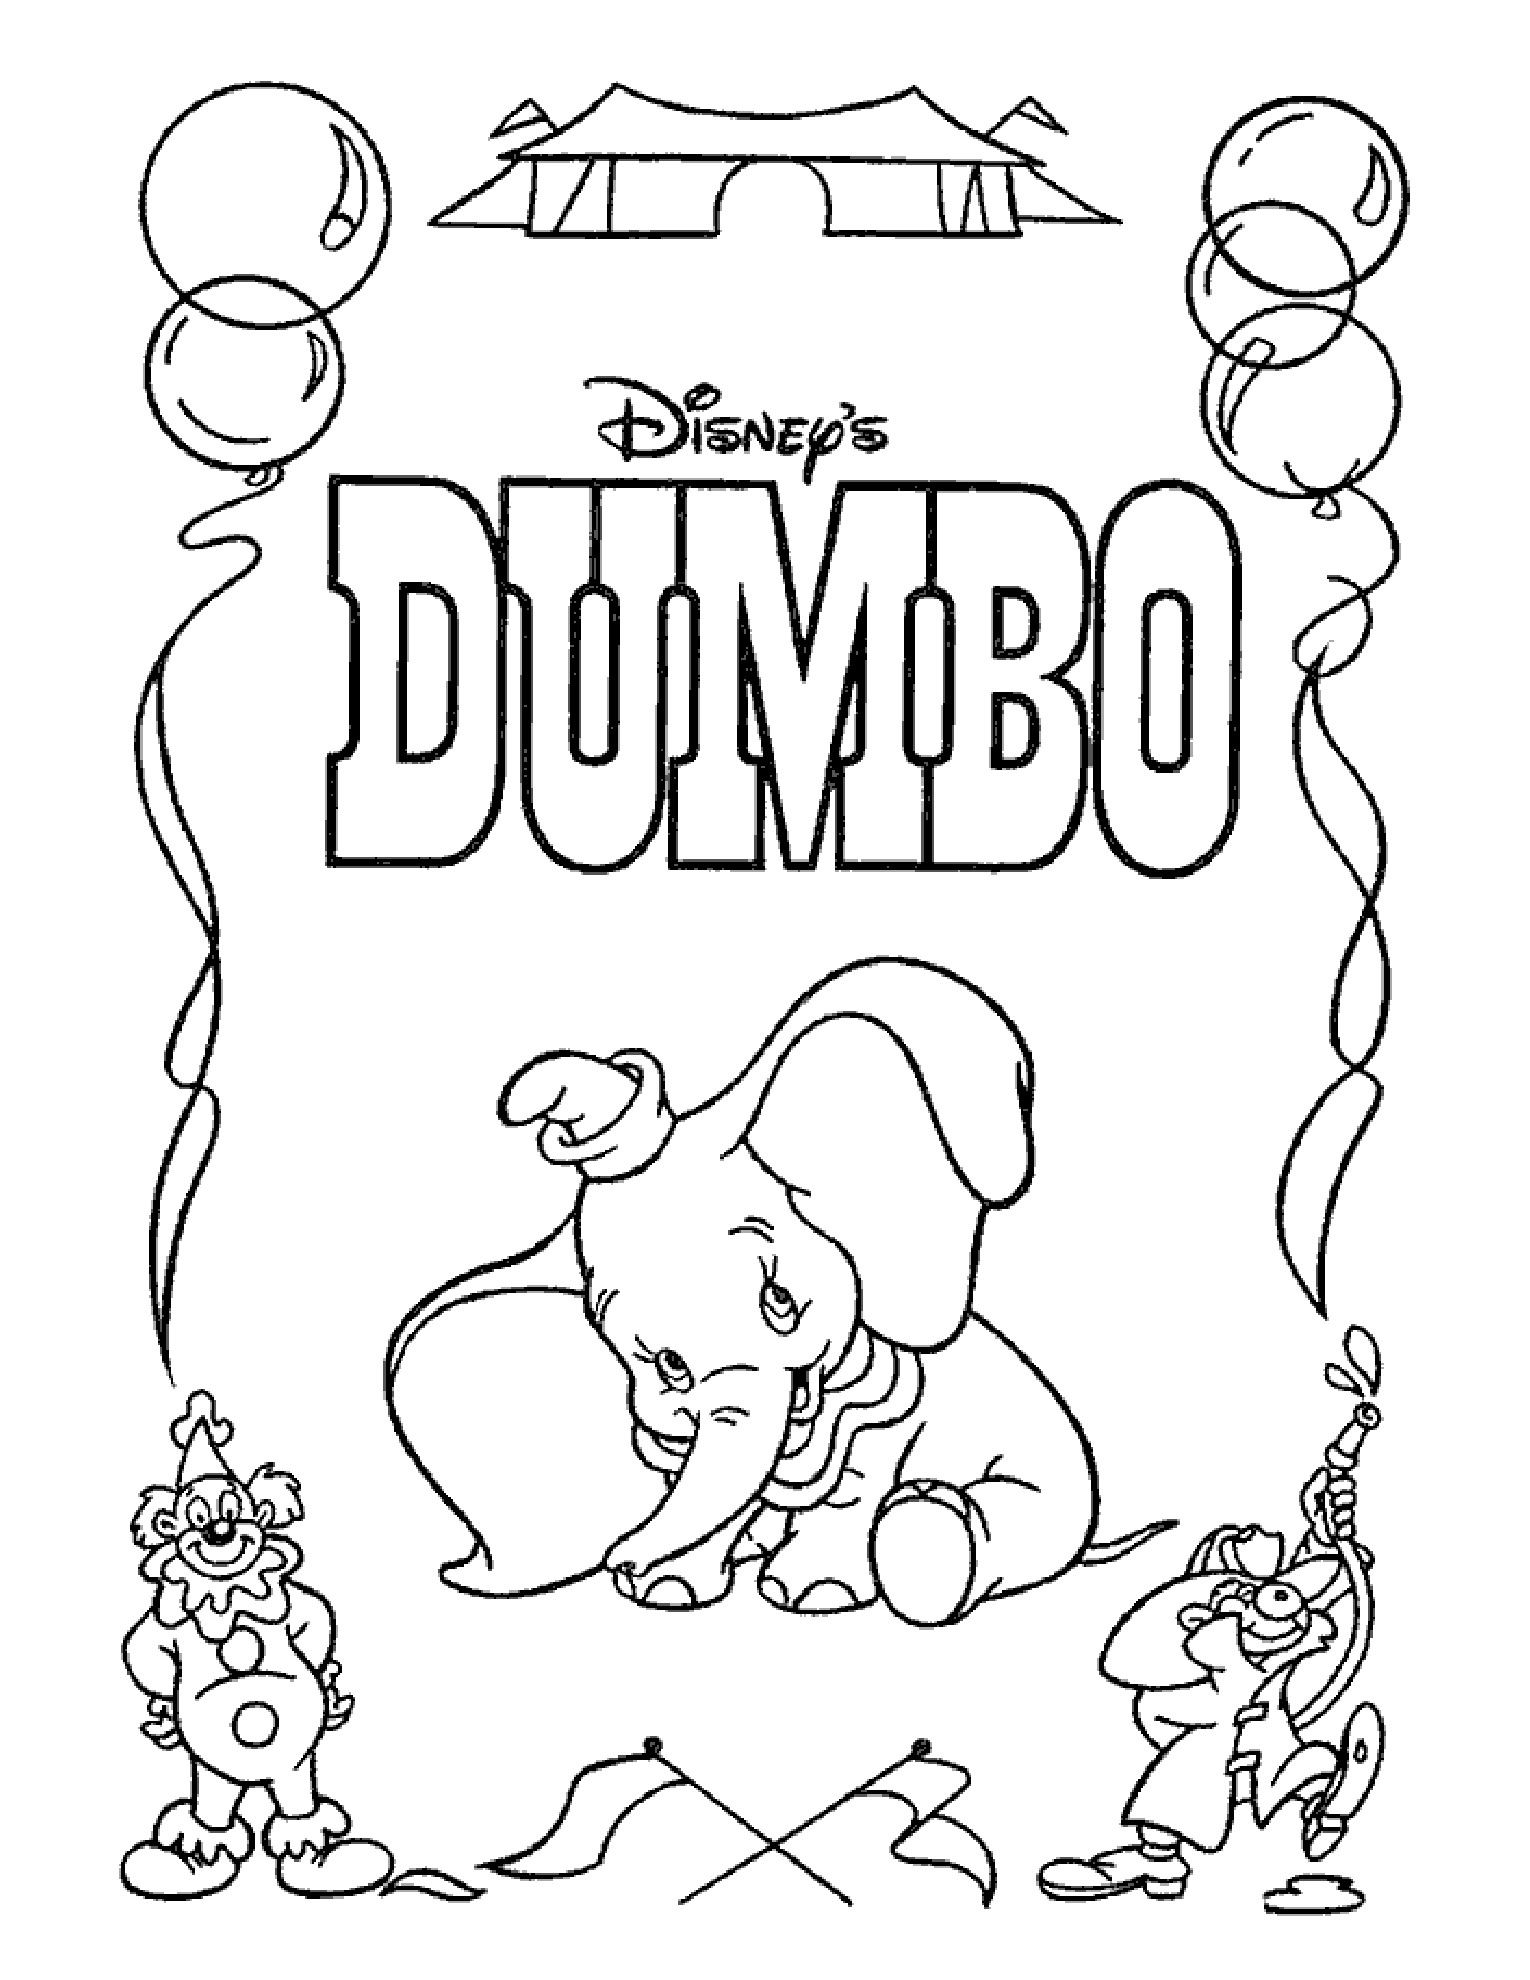 Pin By William Mike Groeneveld On Disney Coloring Pages Movie Covers Disney Coloring Pages Cartoon Coloring Pages Disney Colors